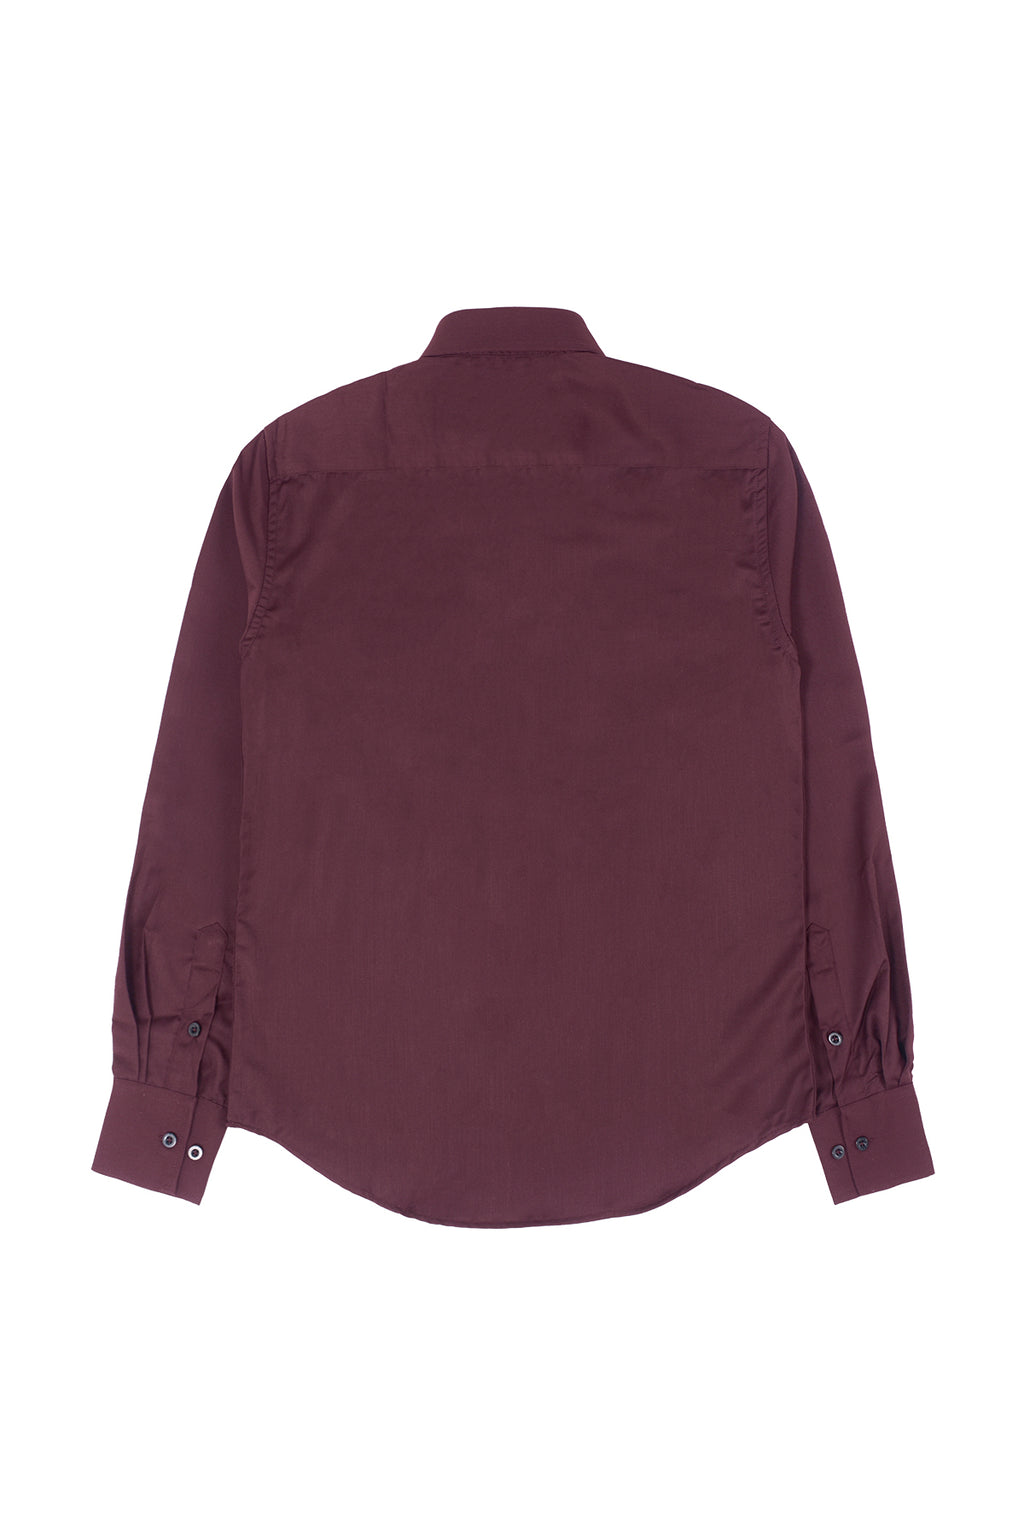 SLIM-FIT EXECUTIVE HIDDEN BUTTON SHIRT | MAROON - 66